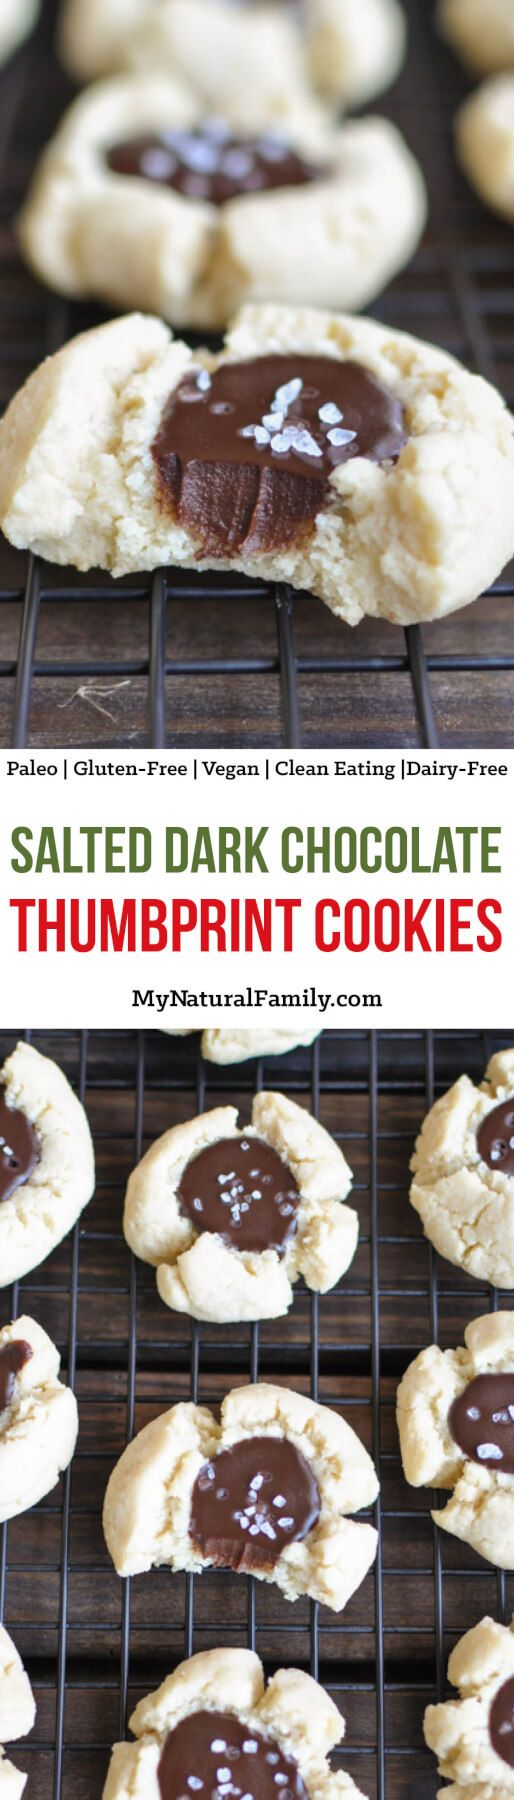 These salted dark chocolate thumbprint Paleo Christmas cookies are soft with the perfect texture. You really can't even tell they are Paleo, Gluten-Free, Clean Eating, Dairy-Free and Vegan!